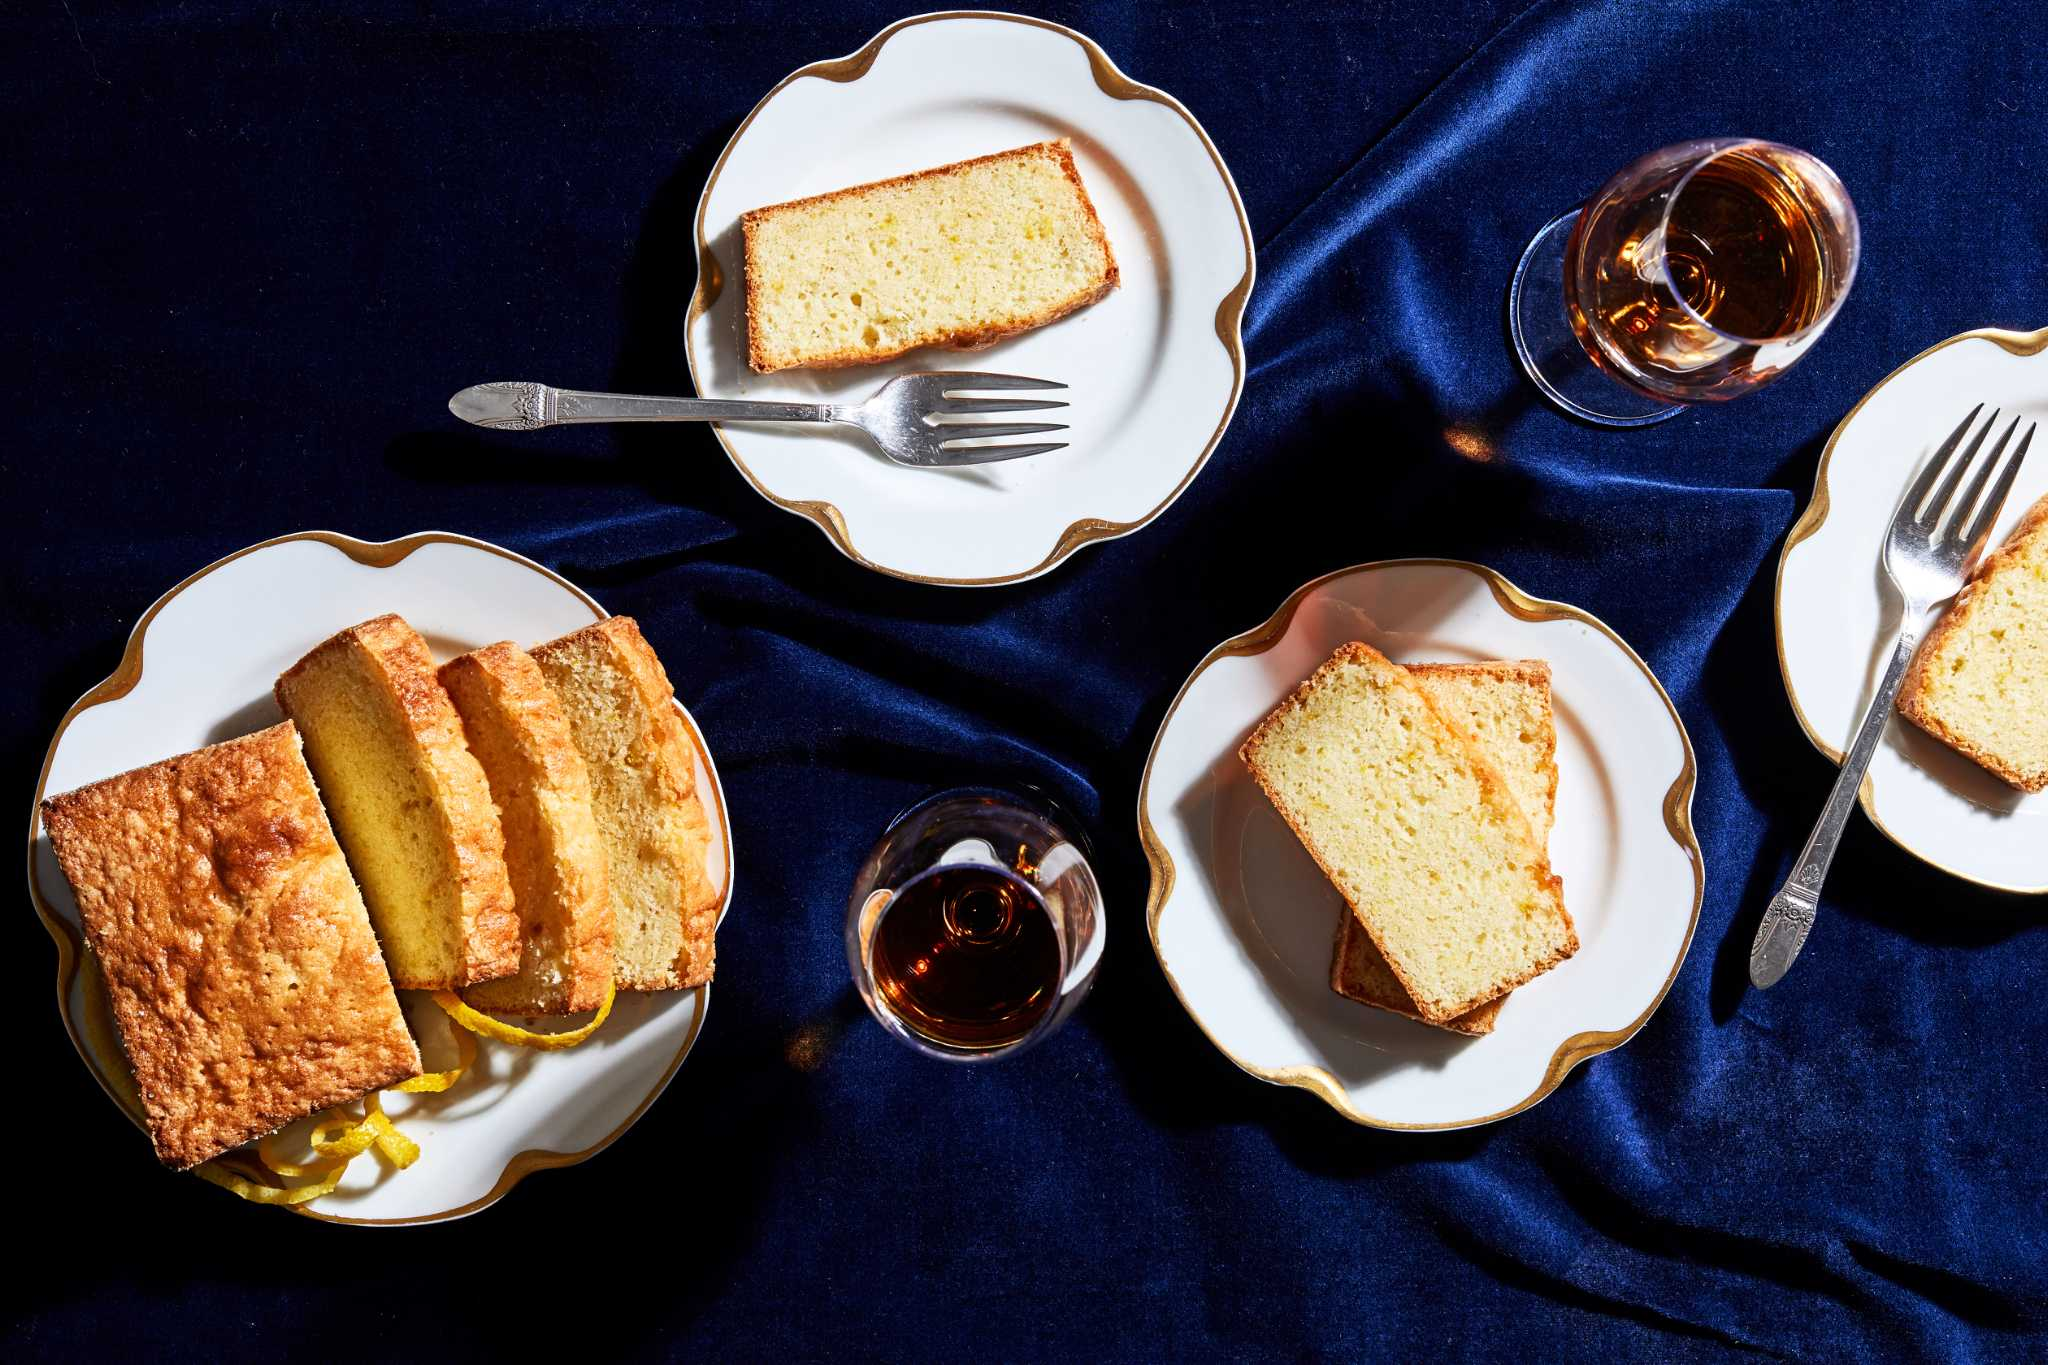 Bake like Mrs. Patmore, eat like the Crawleys with this delightful 'Downton Abbey' cake